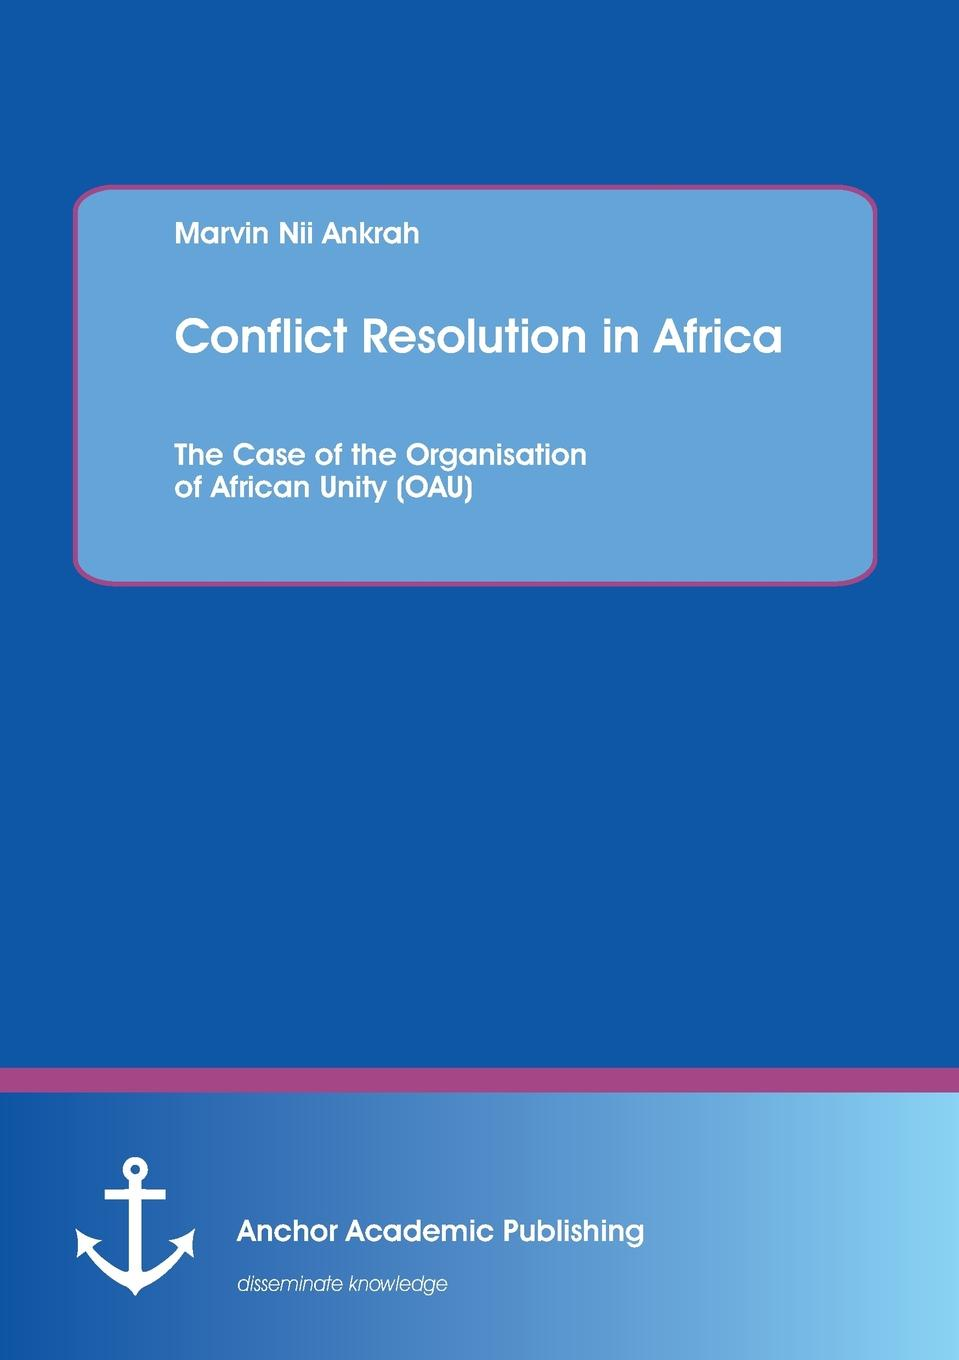 Marvin Nii Ankrah Conflict Resolution in Africa. The Case of the Organisation of African Unity (OAU) academic freedom in africa